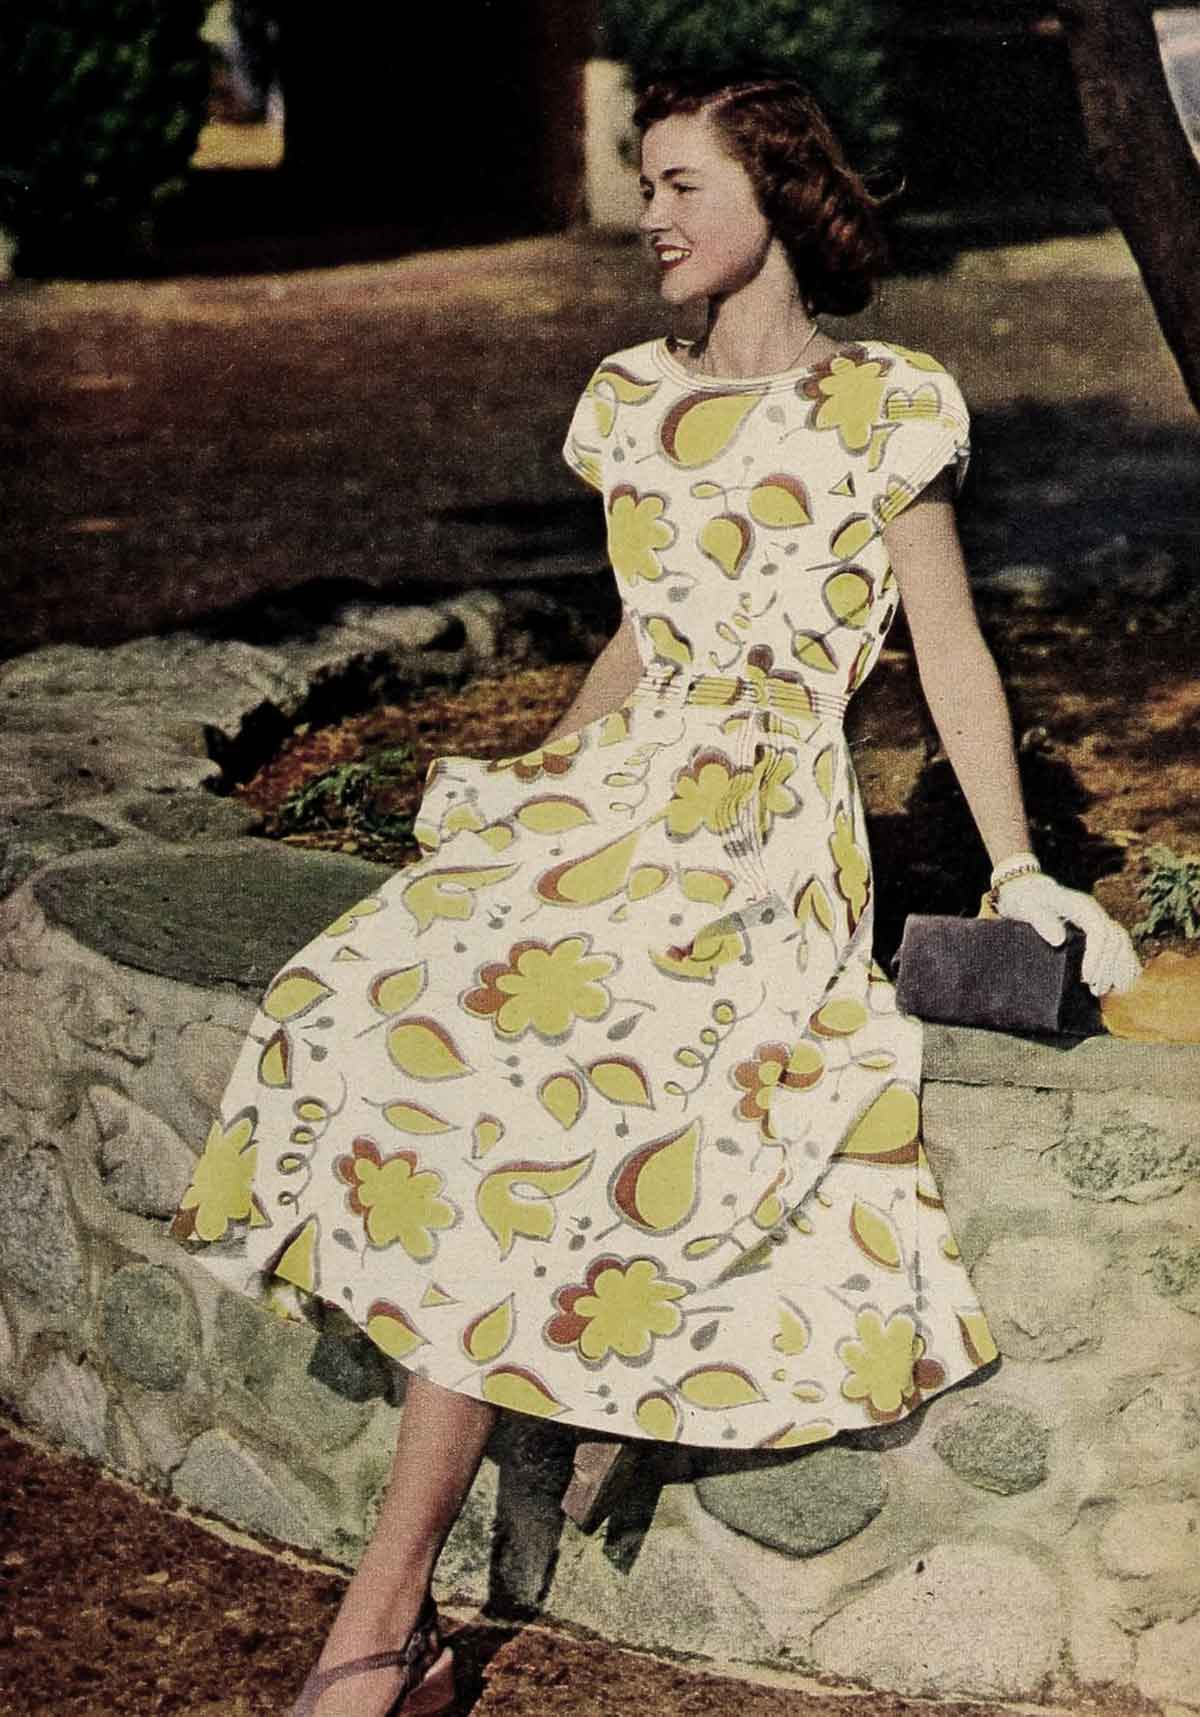 1940s Style Dresses Fashion Clothing: 1940s Fashion - Summer Frock And Swimsuit Styles